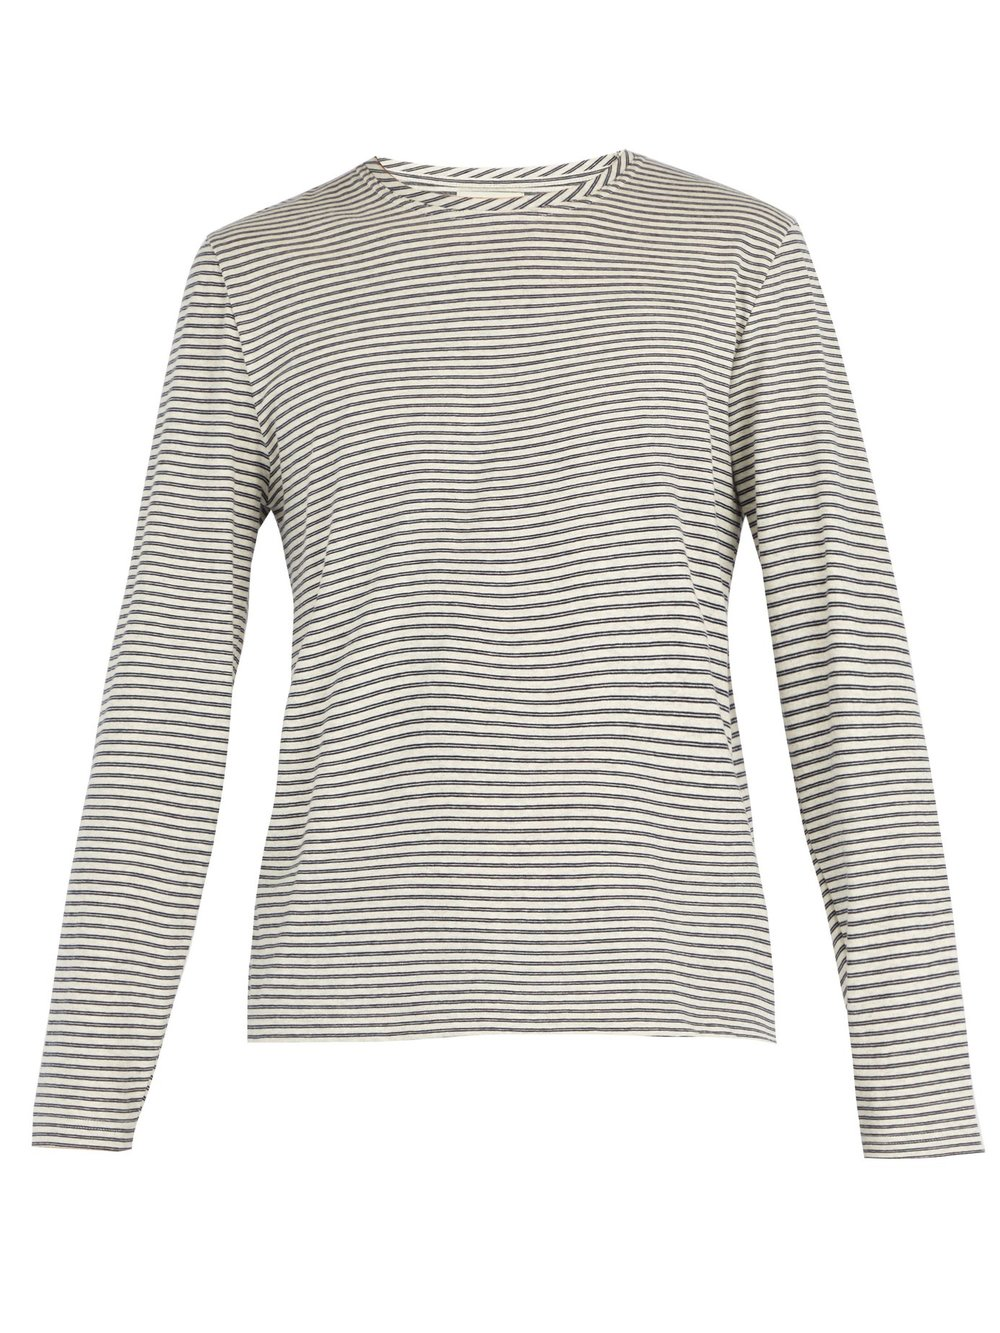 A striped cotton top from Oliver Spencer  - £70  Photo: www.mrporter.com